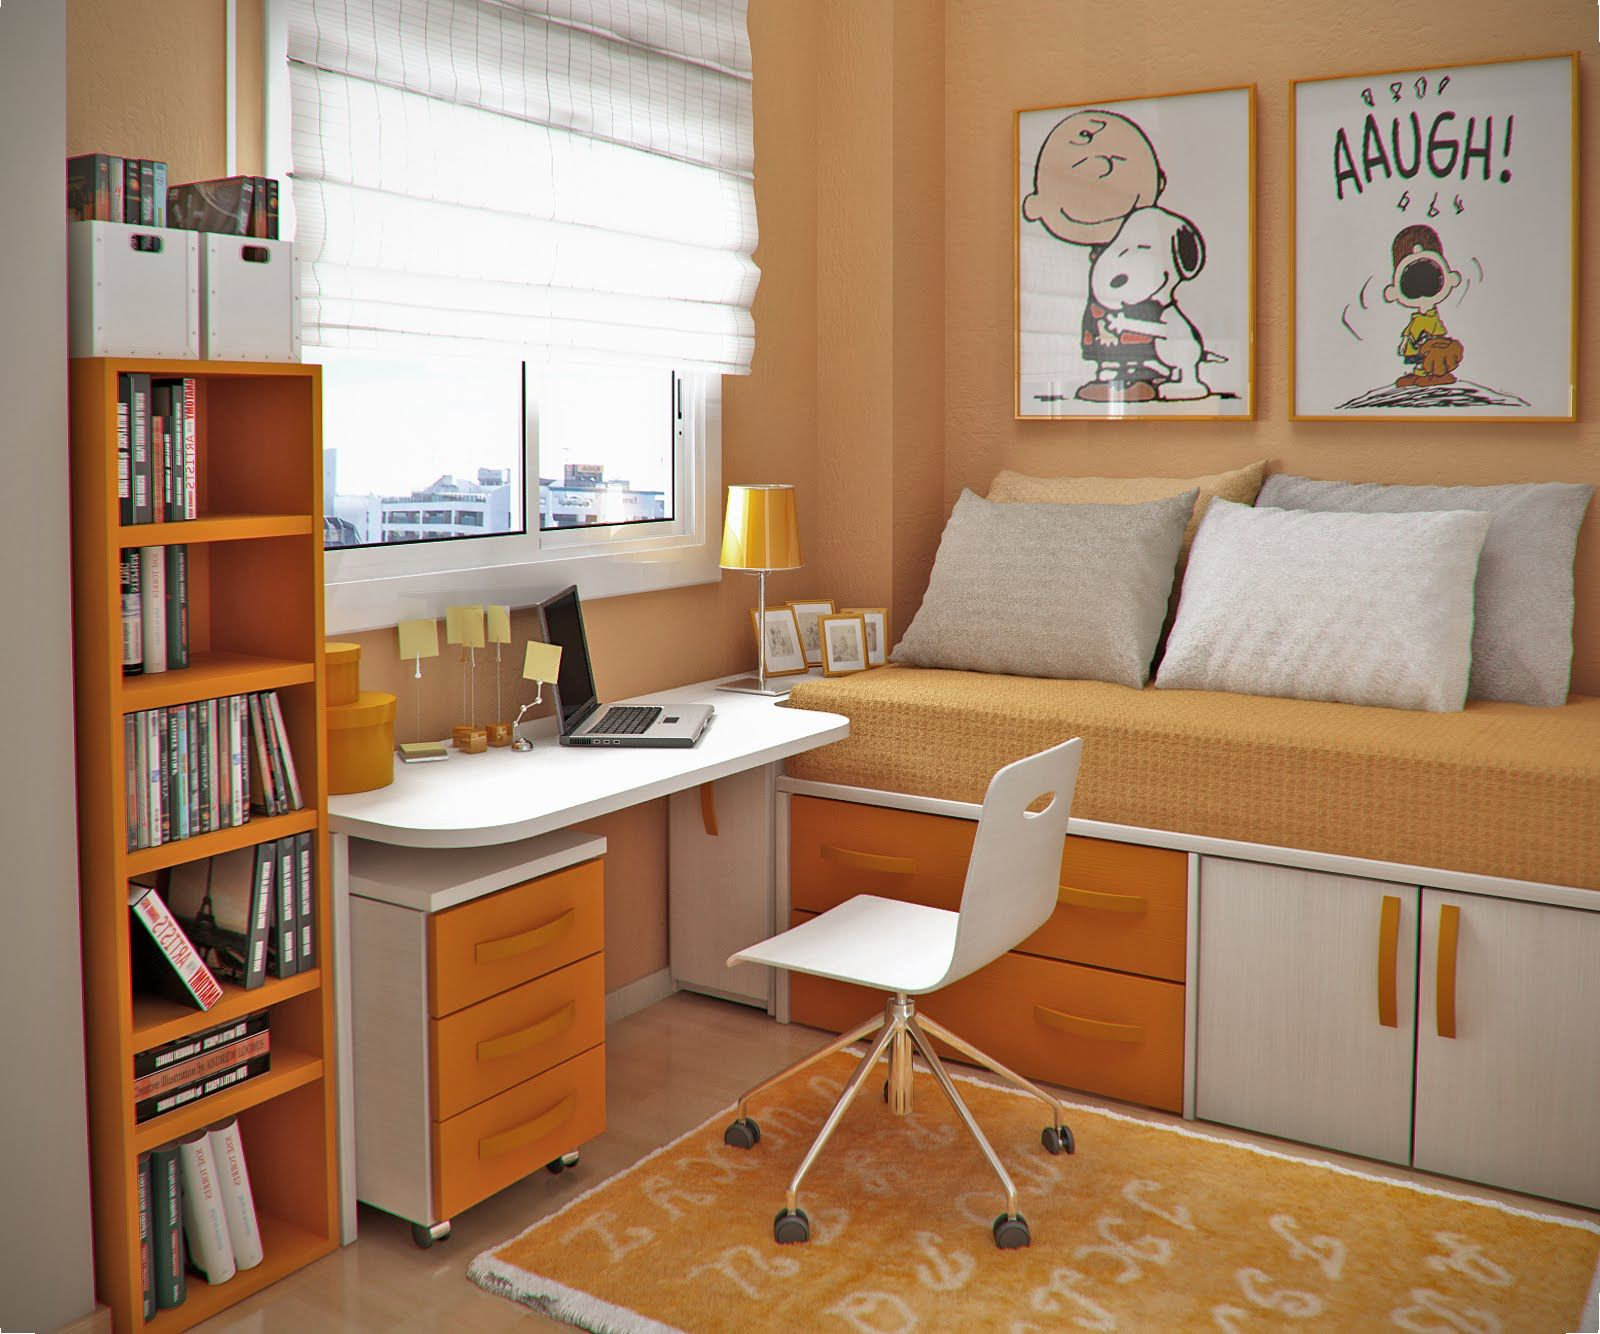 How To Make A Colorful Small Bedroom For Your Kid Small Room Design Small Bedroom Small Bedroom Organization